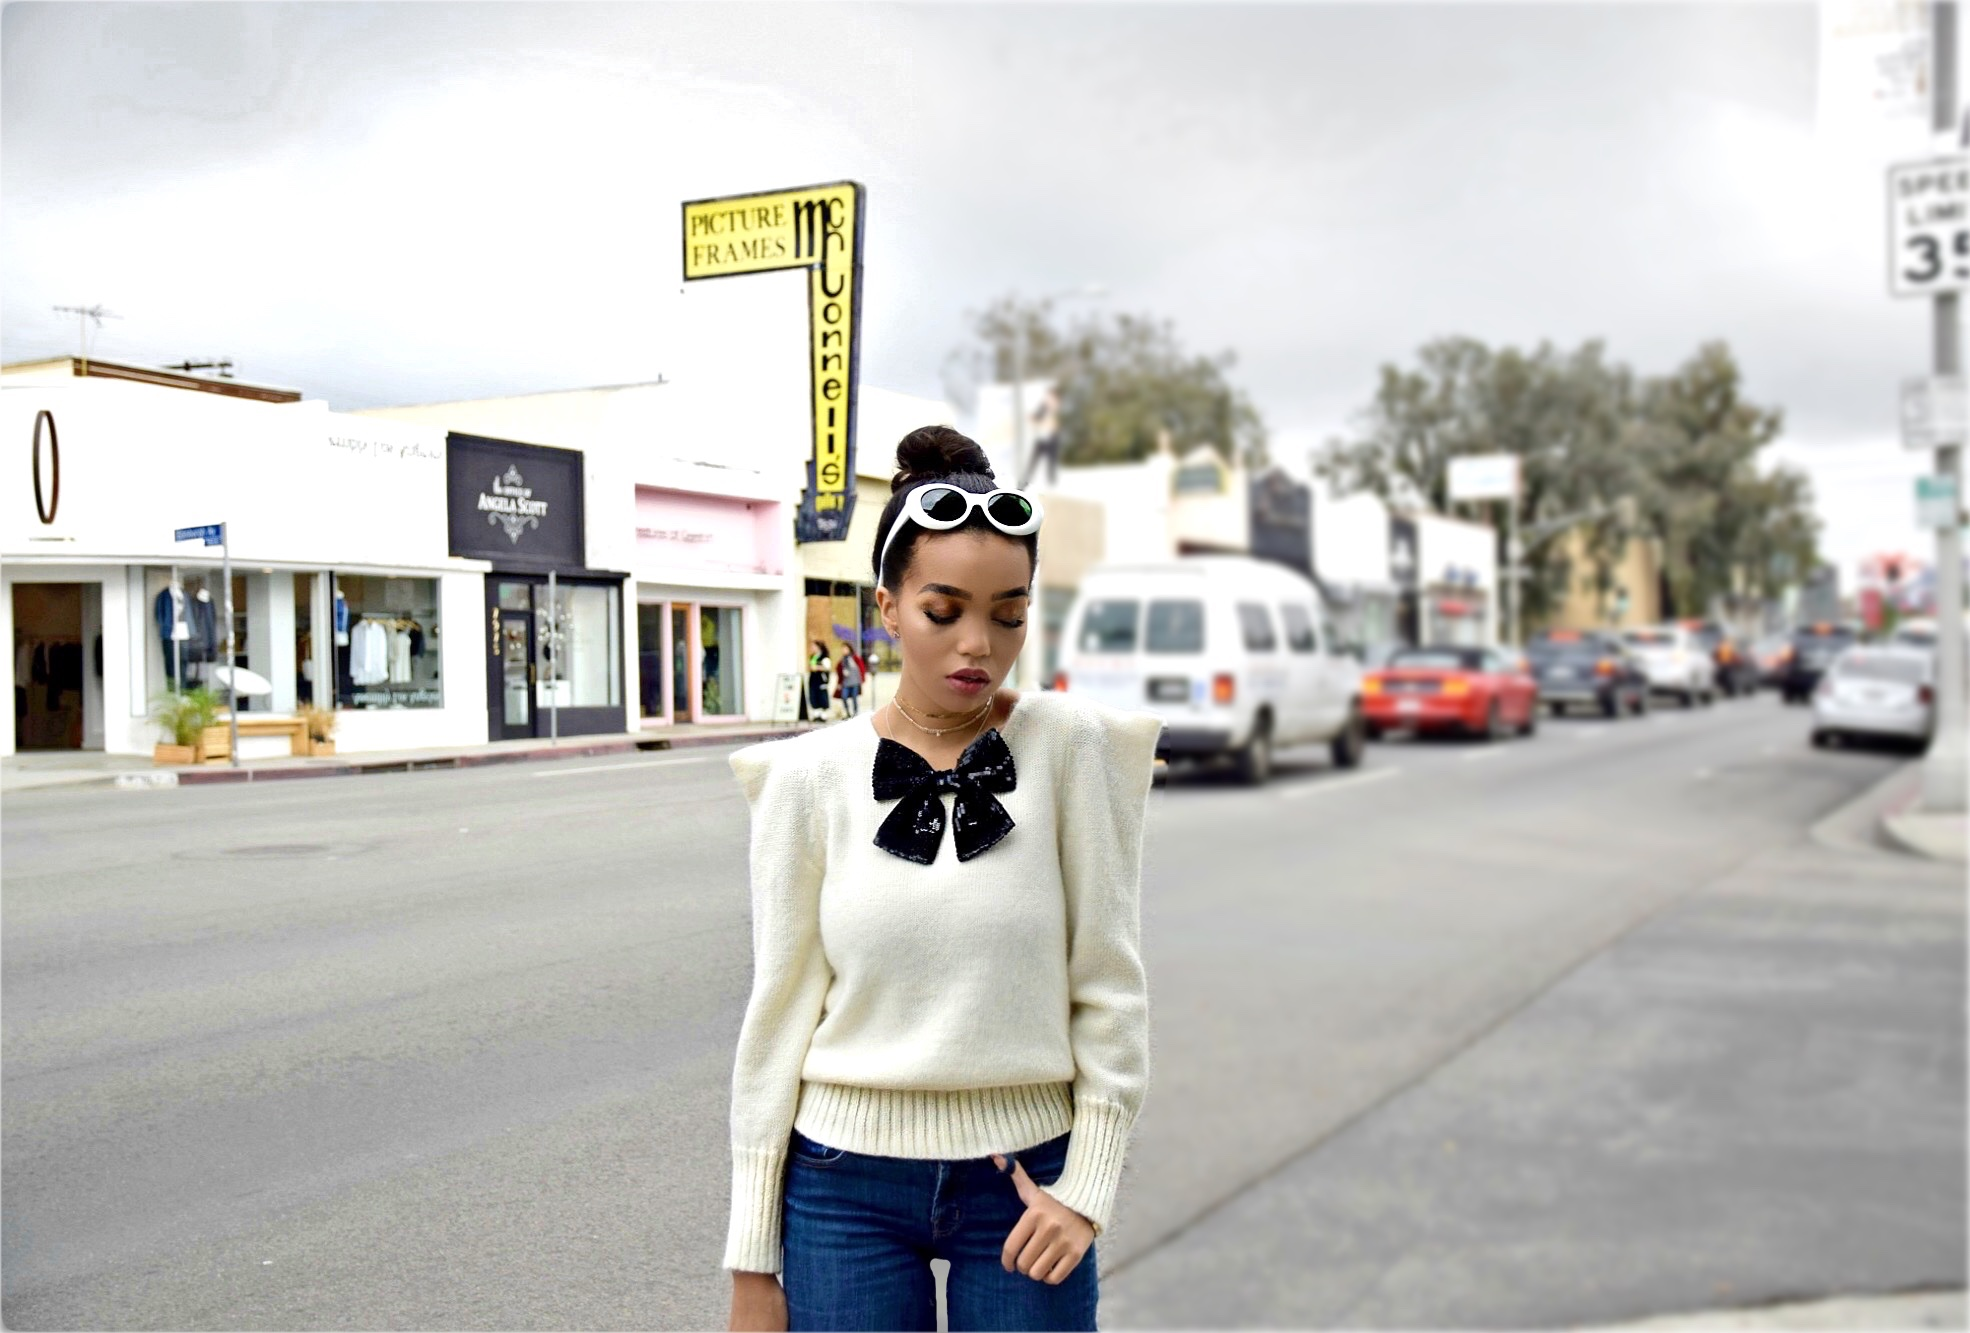 All YSL Everything // Saint Laurent Street Style // Saint Laurent White Sweater with Pointed Shoulders and A Black Sequin Bow // Saint Laurent Bomber Jacket // Saint Laurent Red & Gold Cowboy Booties // Louis Vuitton Mini Backpack // Are You Am I Gold Choker // J Brand Jeans // Acne Studios Mustang Sunglasses // Los Angeles Street Style Fashion Blogger Daphne Blunt: To Style, With Love